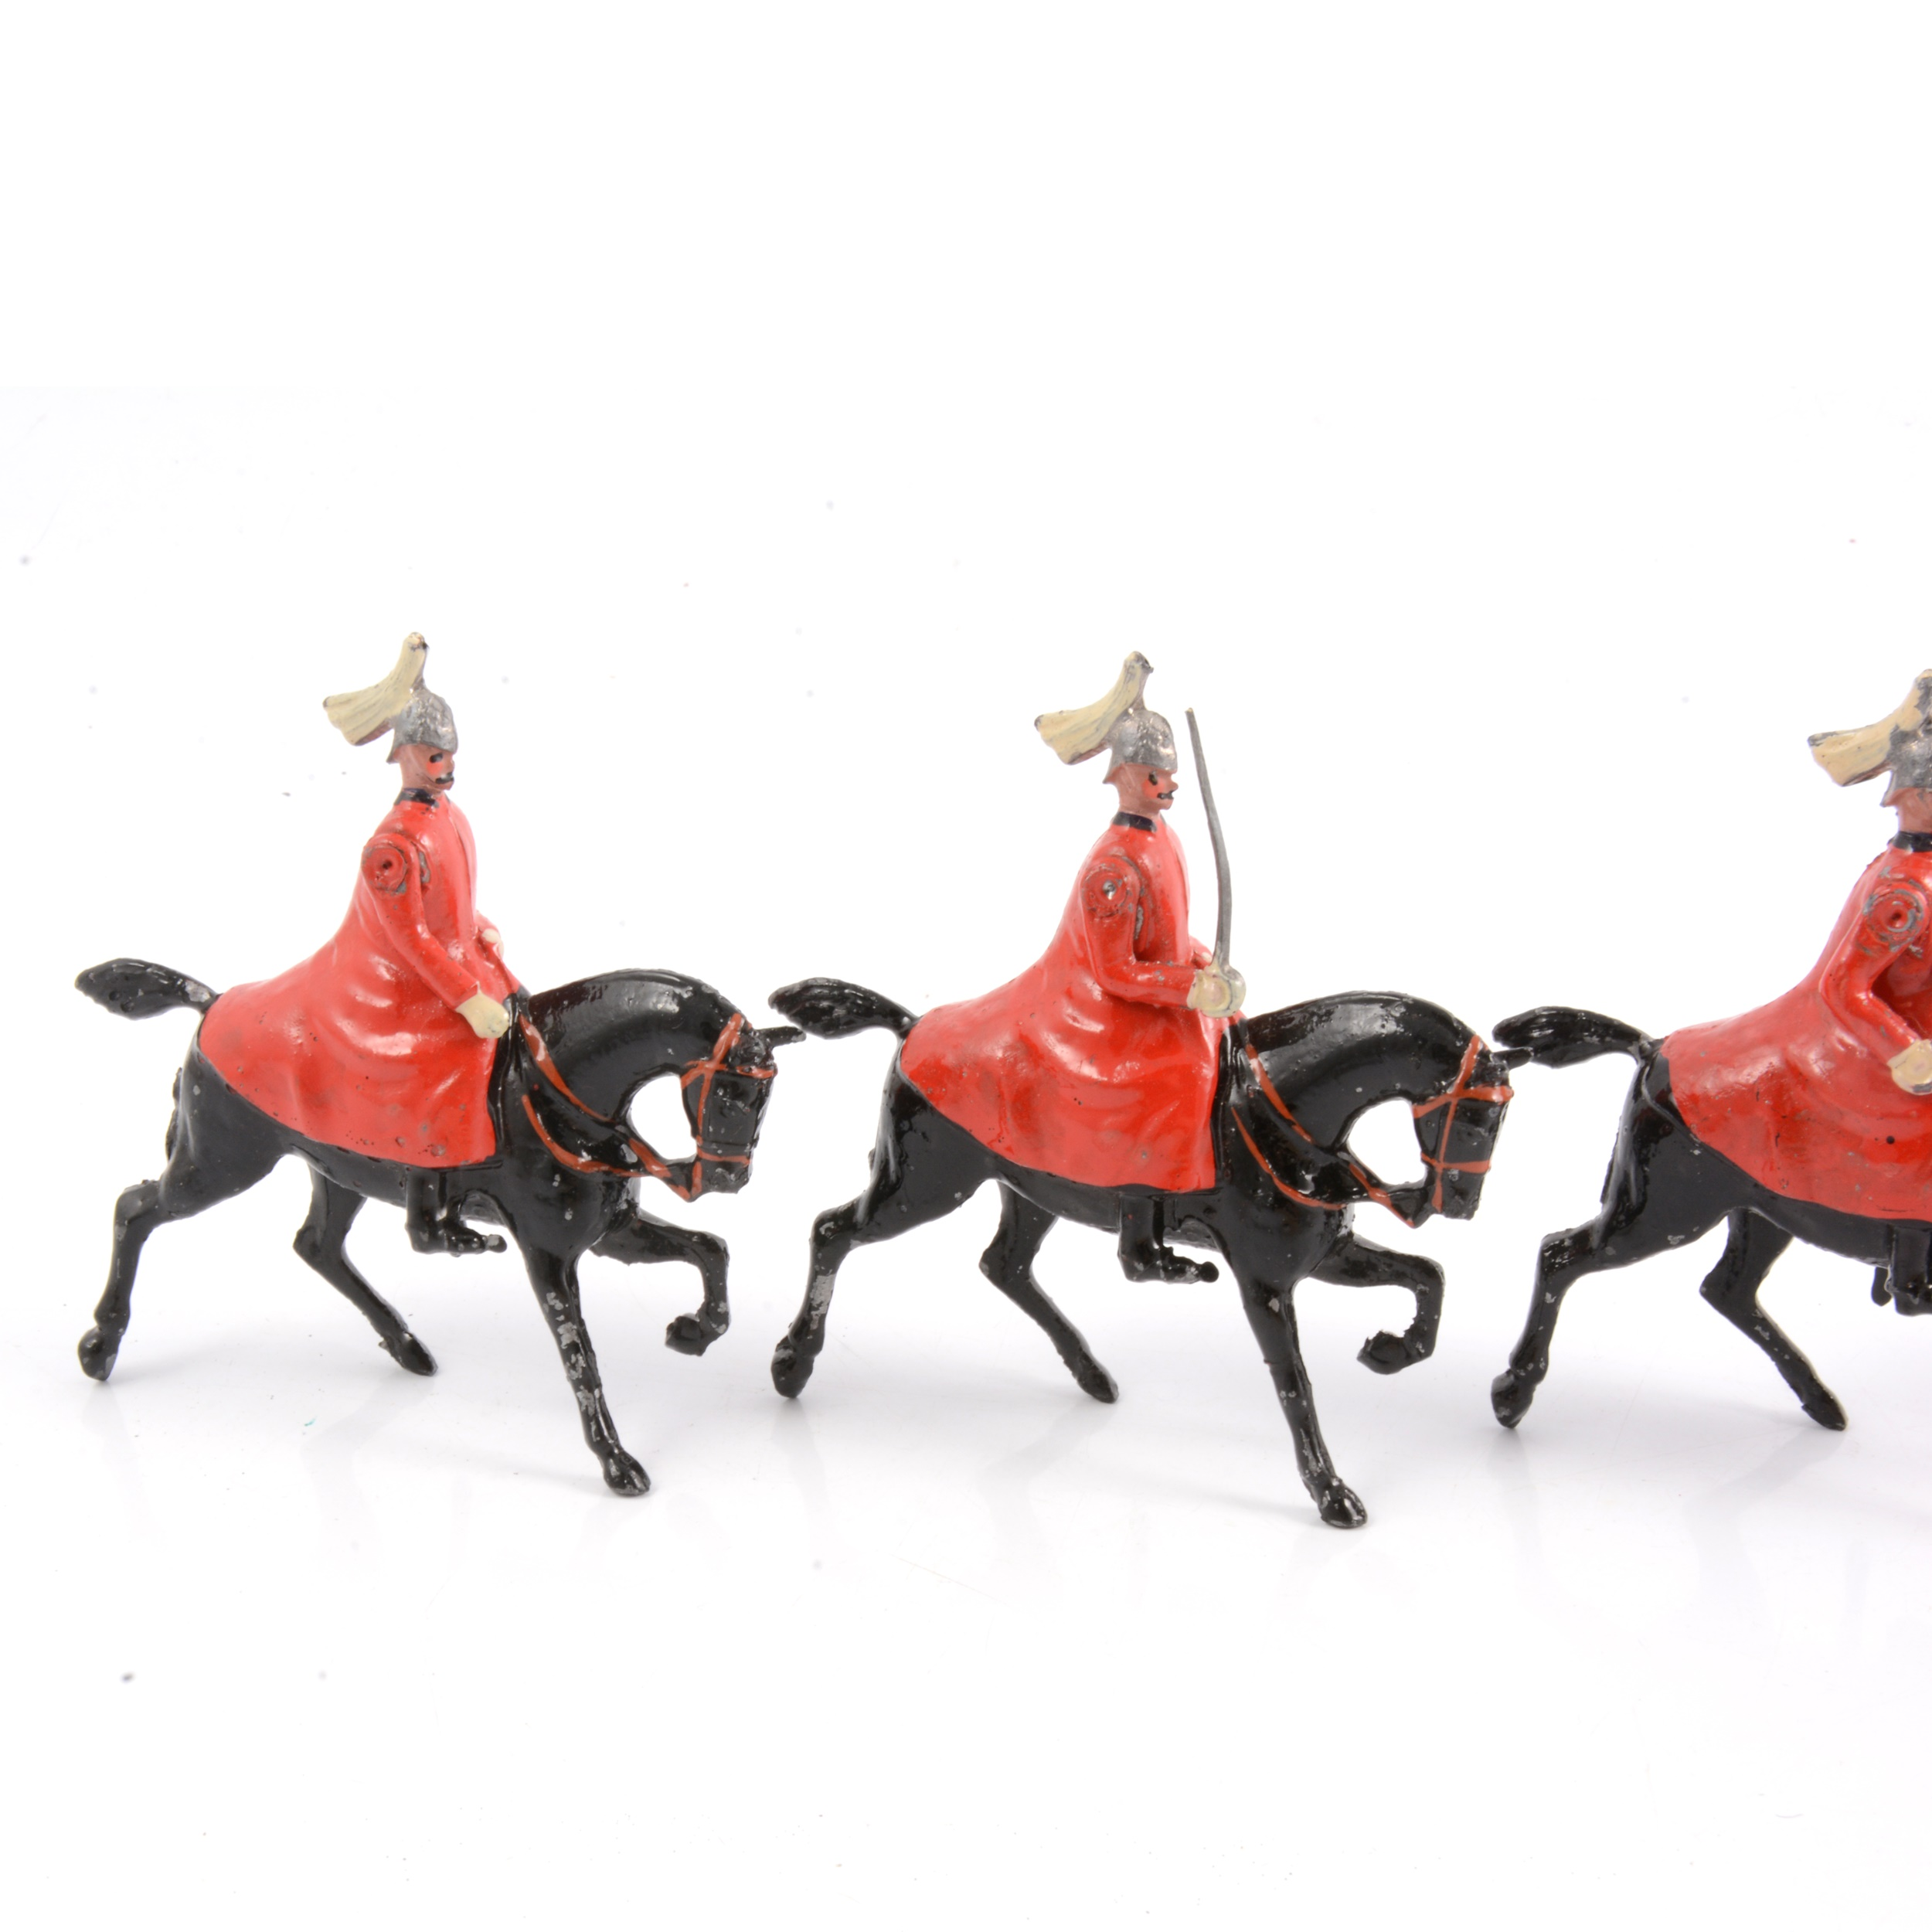 Britains lead-painted figures, Life Guards in winter coats set no.400 - Image 2 of 3